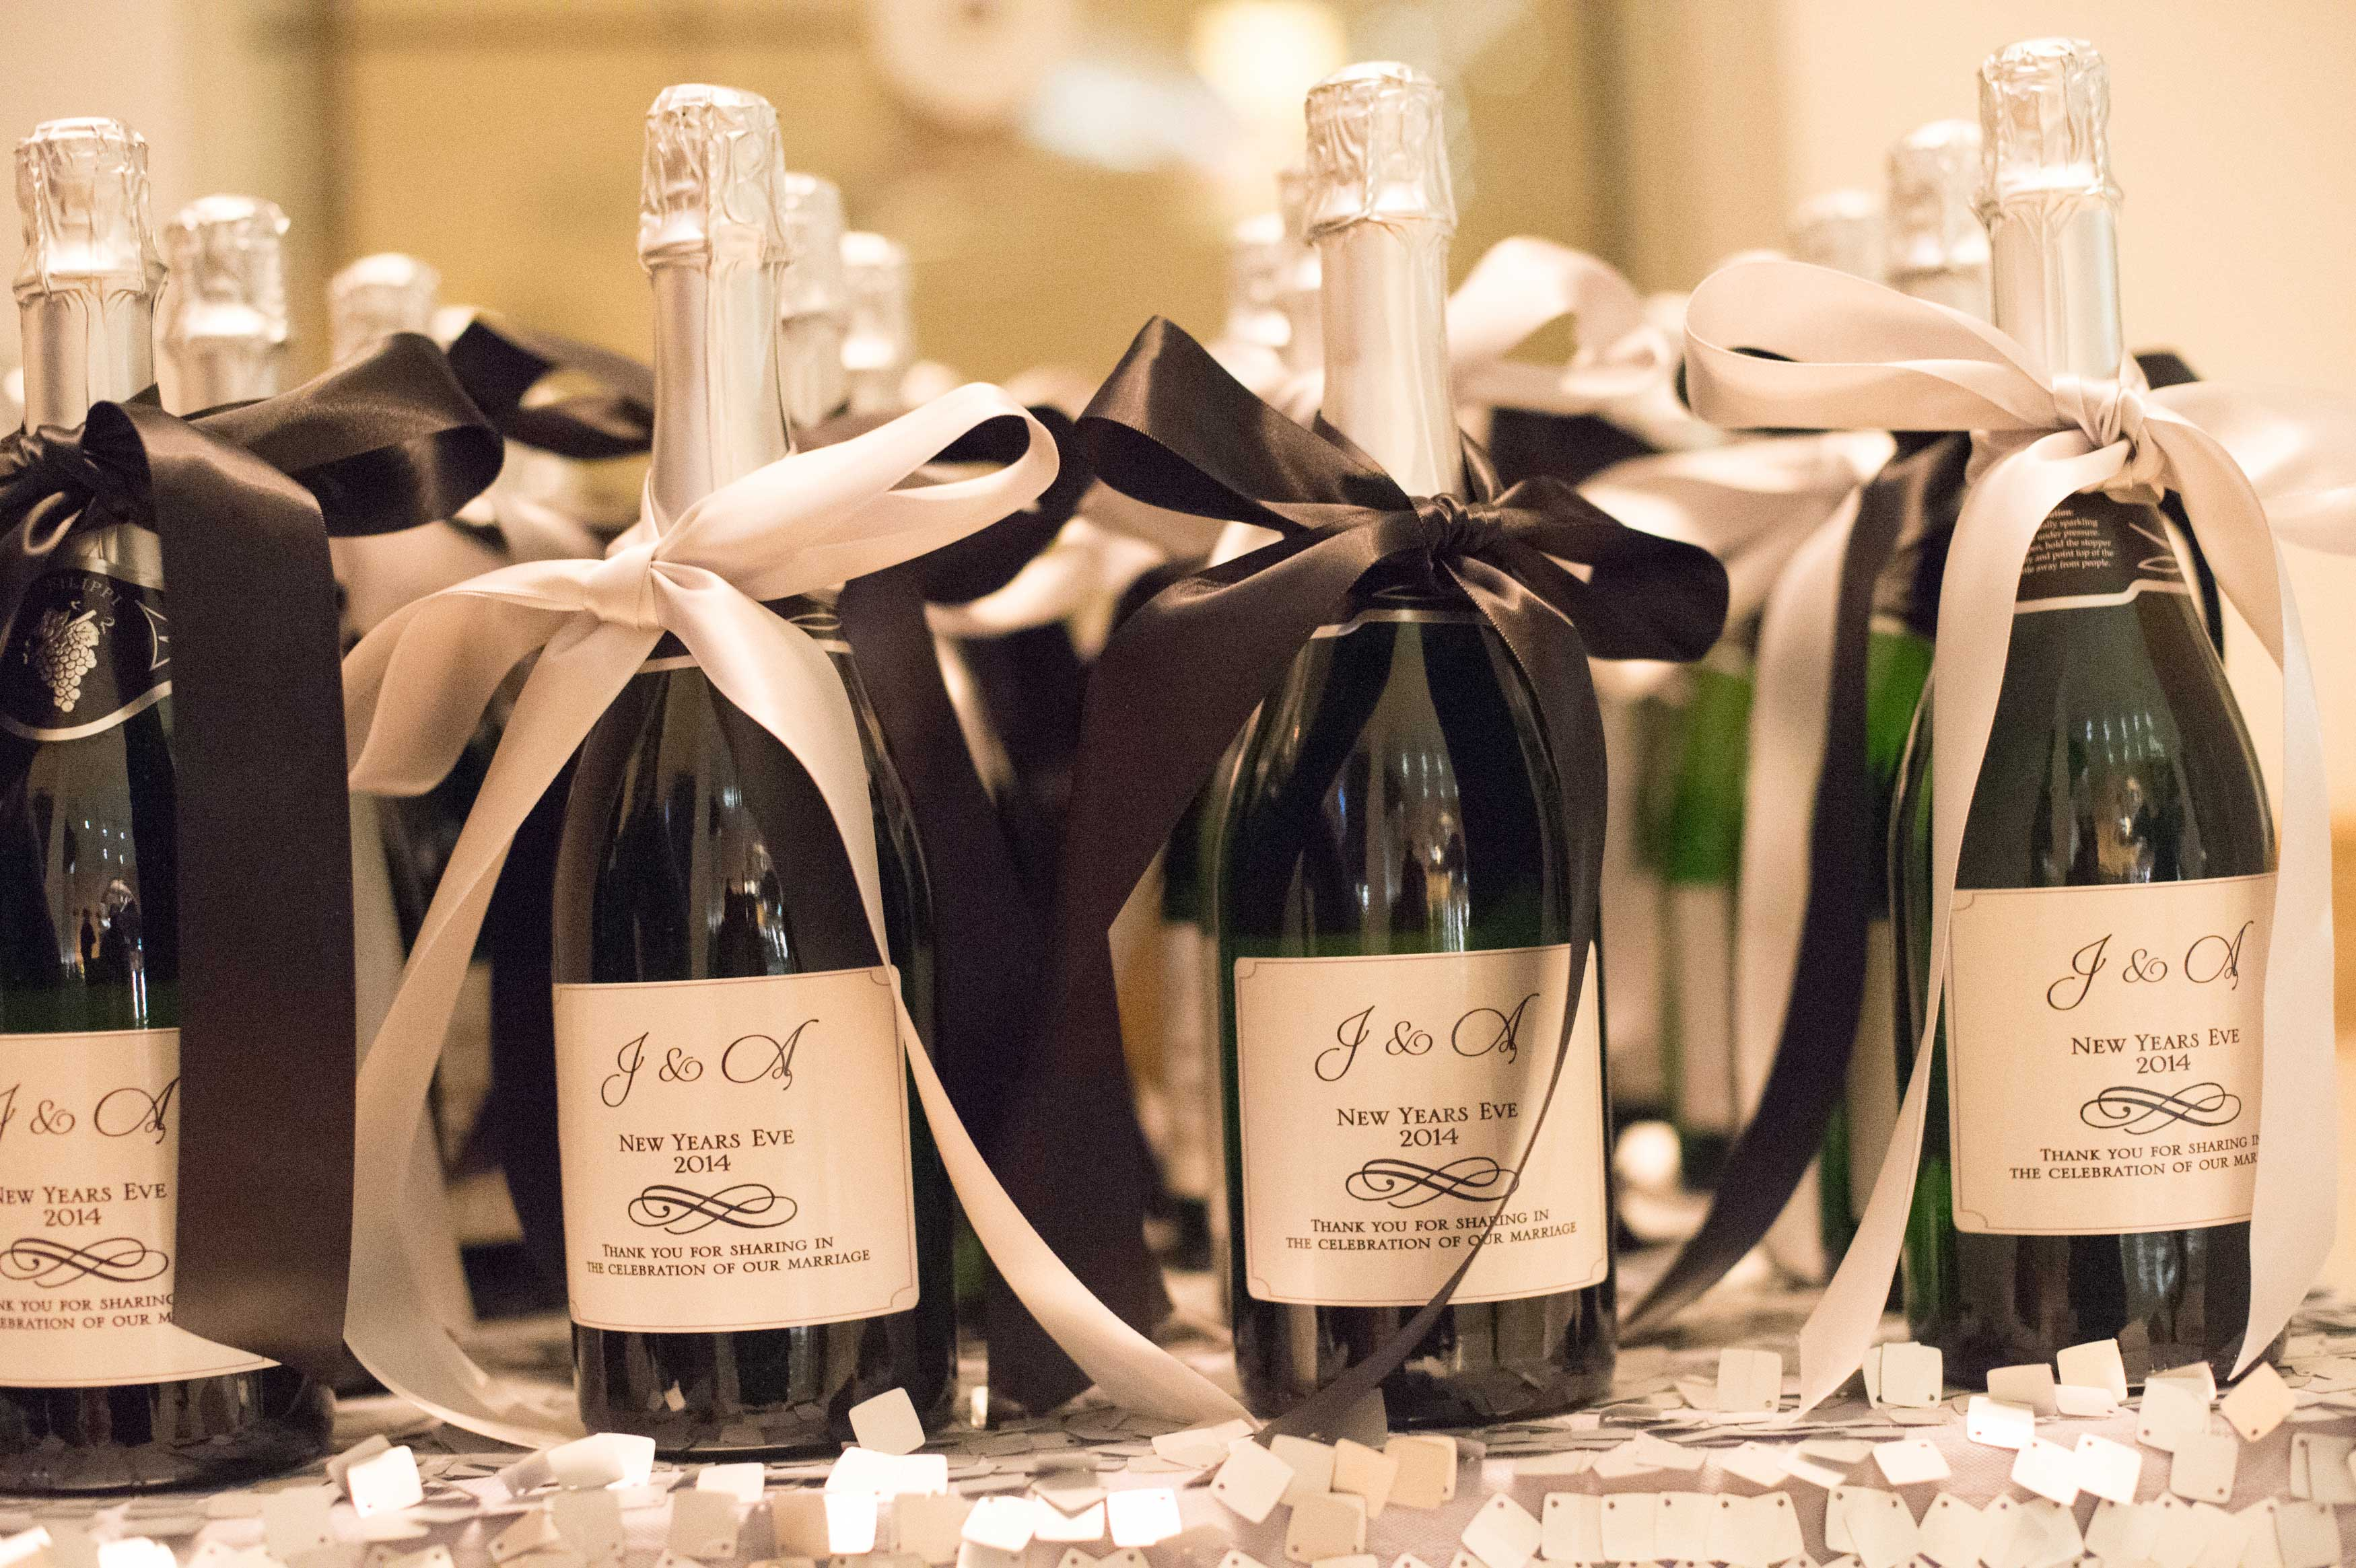 15 New Year's Eve Wedding Ideas From Real Weddings